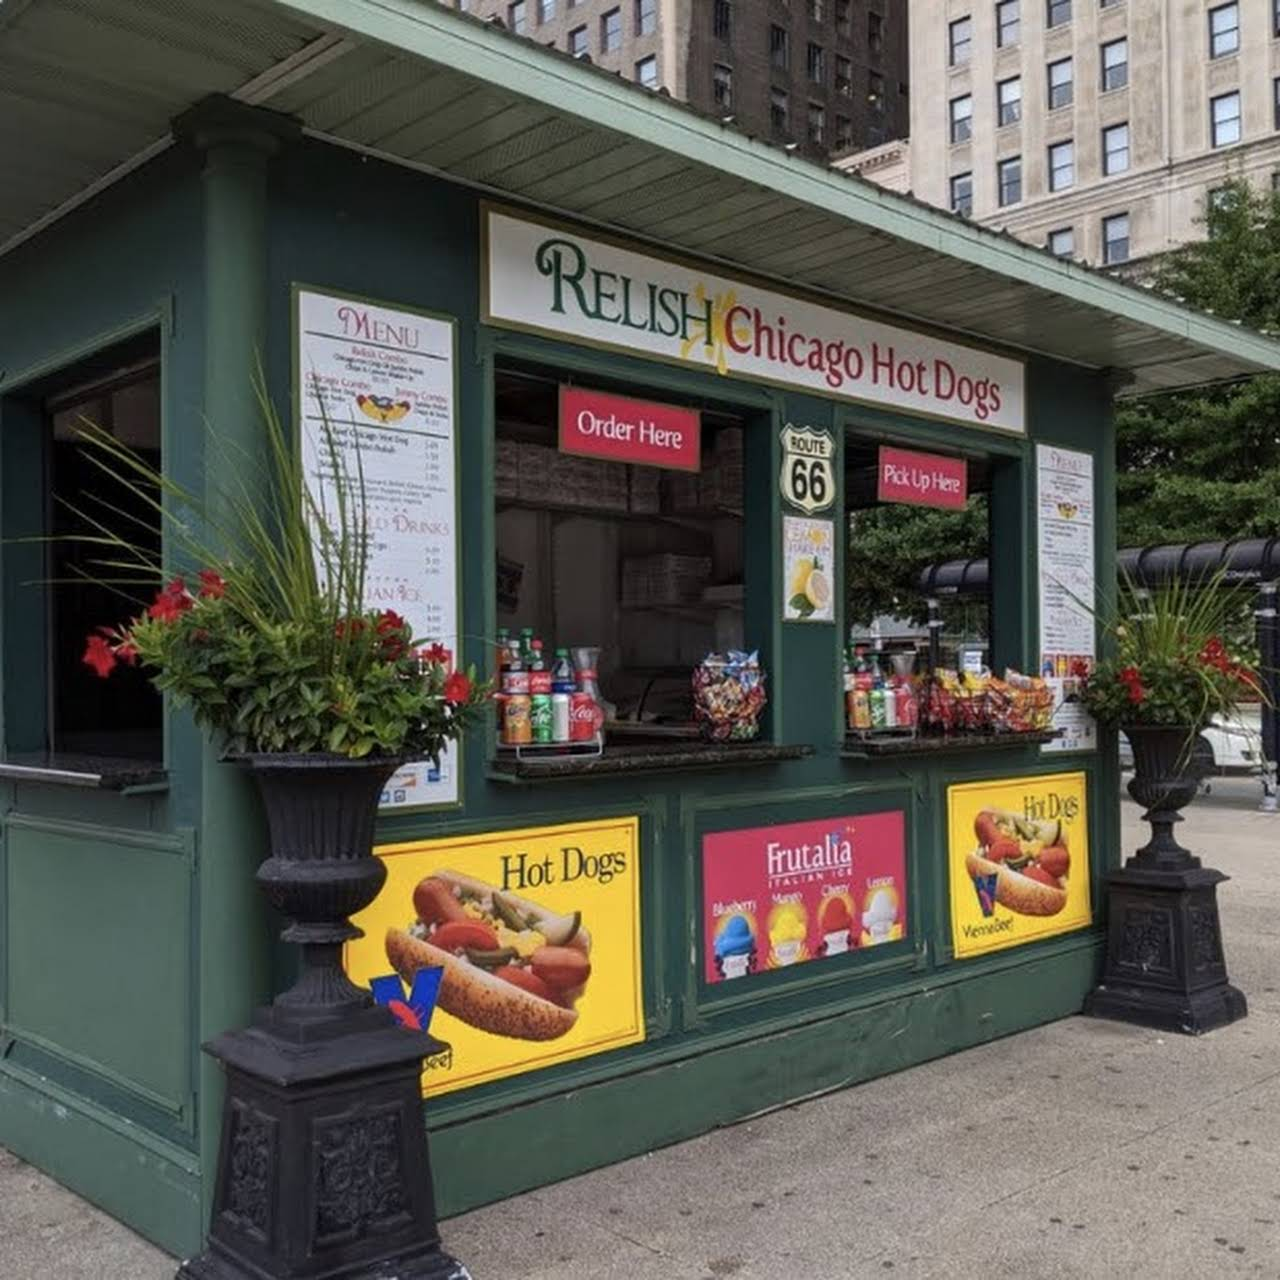 Relish Chicago Hot Dogs - Chicago Hot Dog Stand offering Italian Ice and  Fresh Squeezed Lemonade